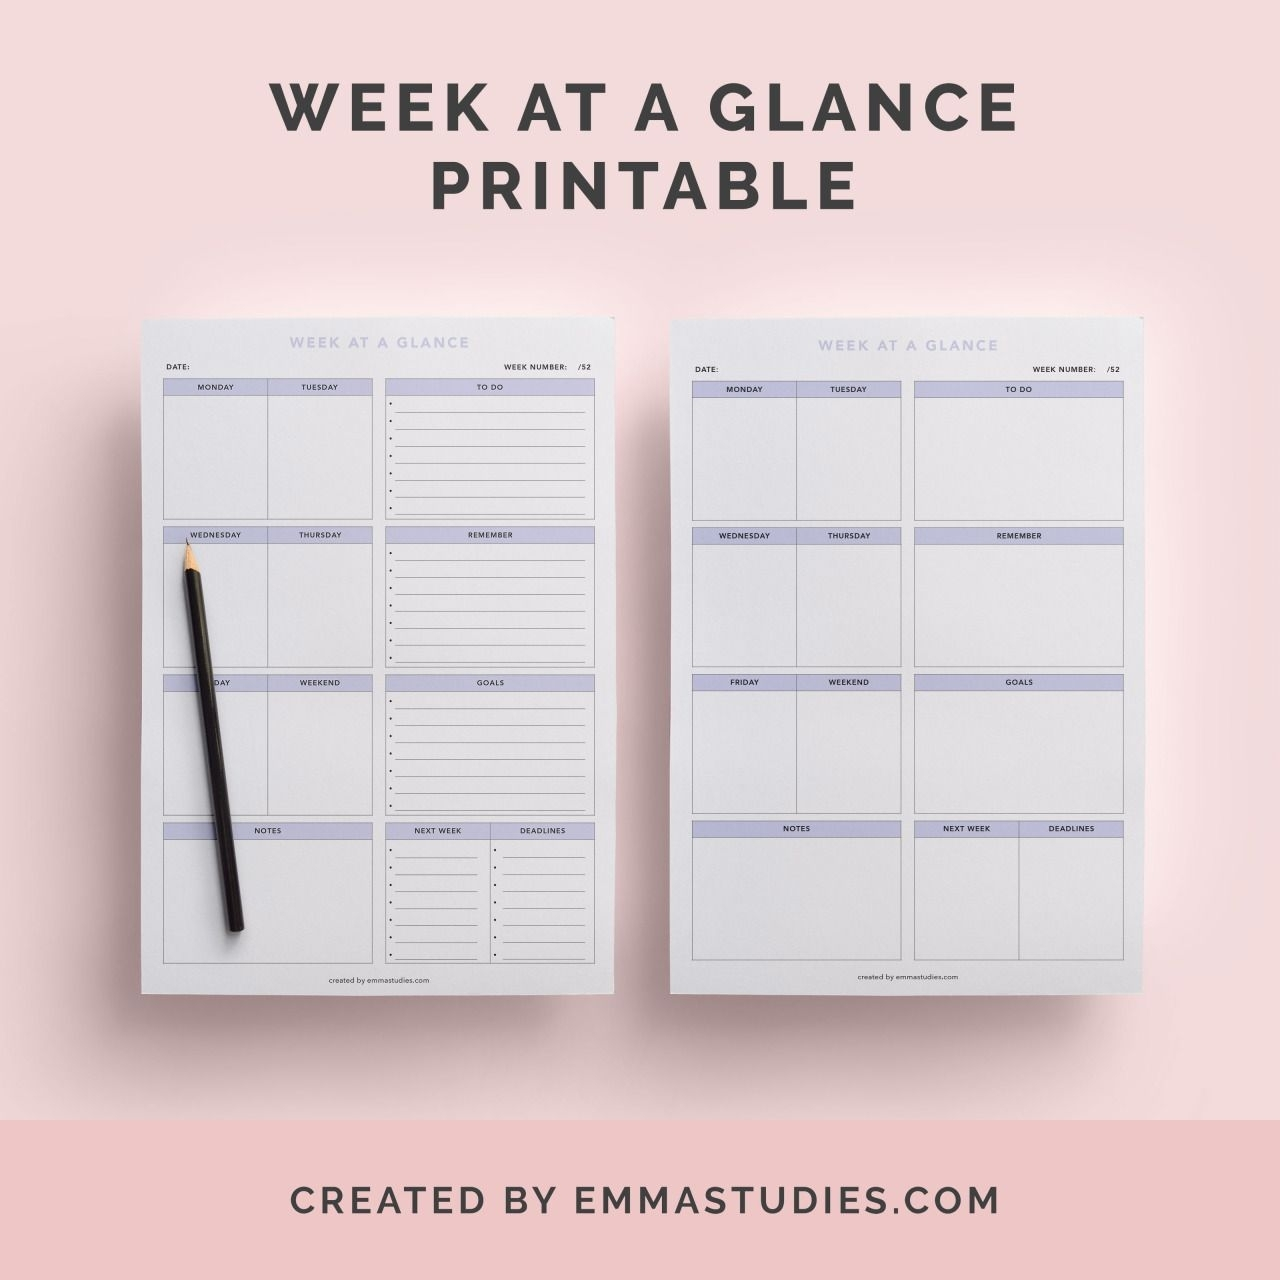 Week At A Glance Weekly Schedule Free Printable For Download